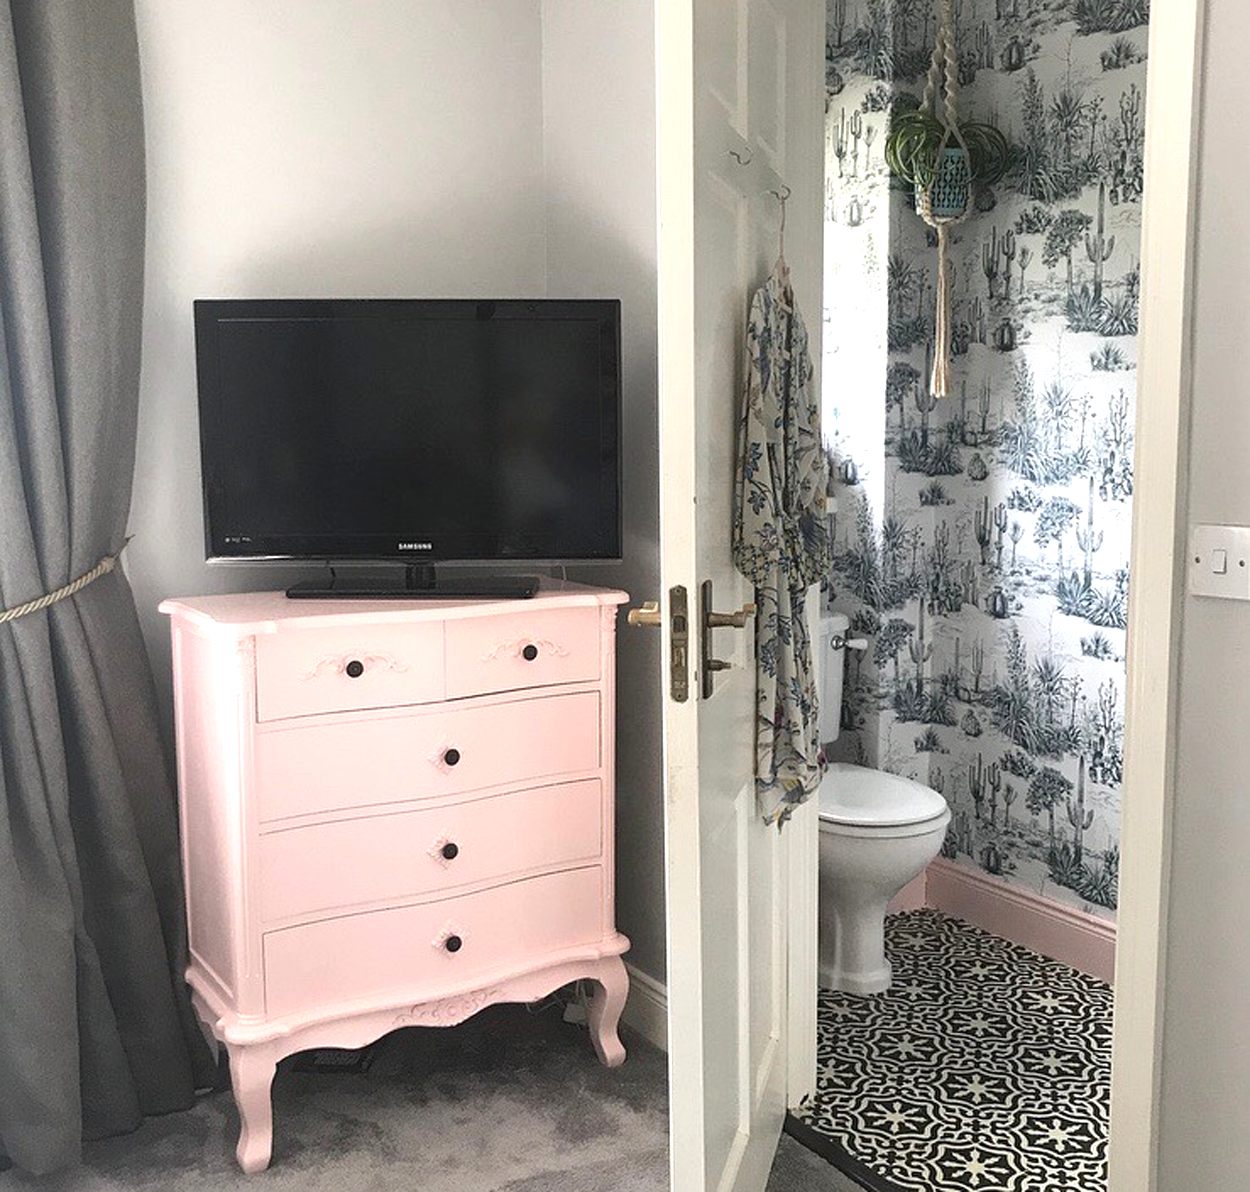 Budget breakdown: Here's how much Joanne's ensuite renovation cost